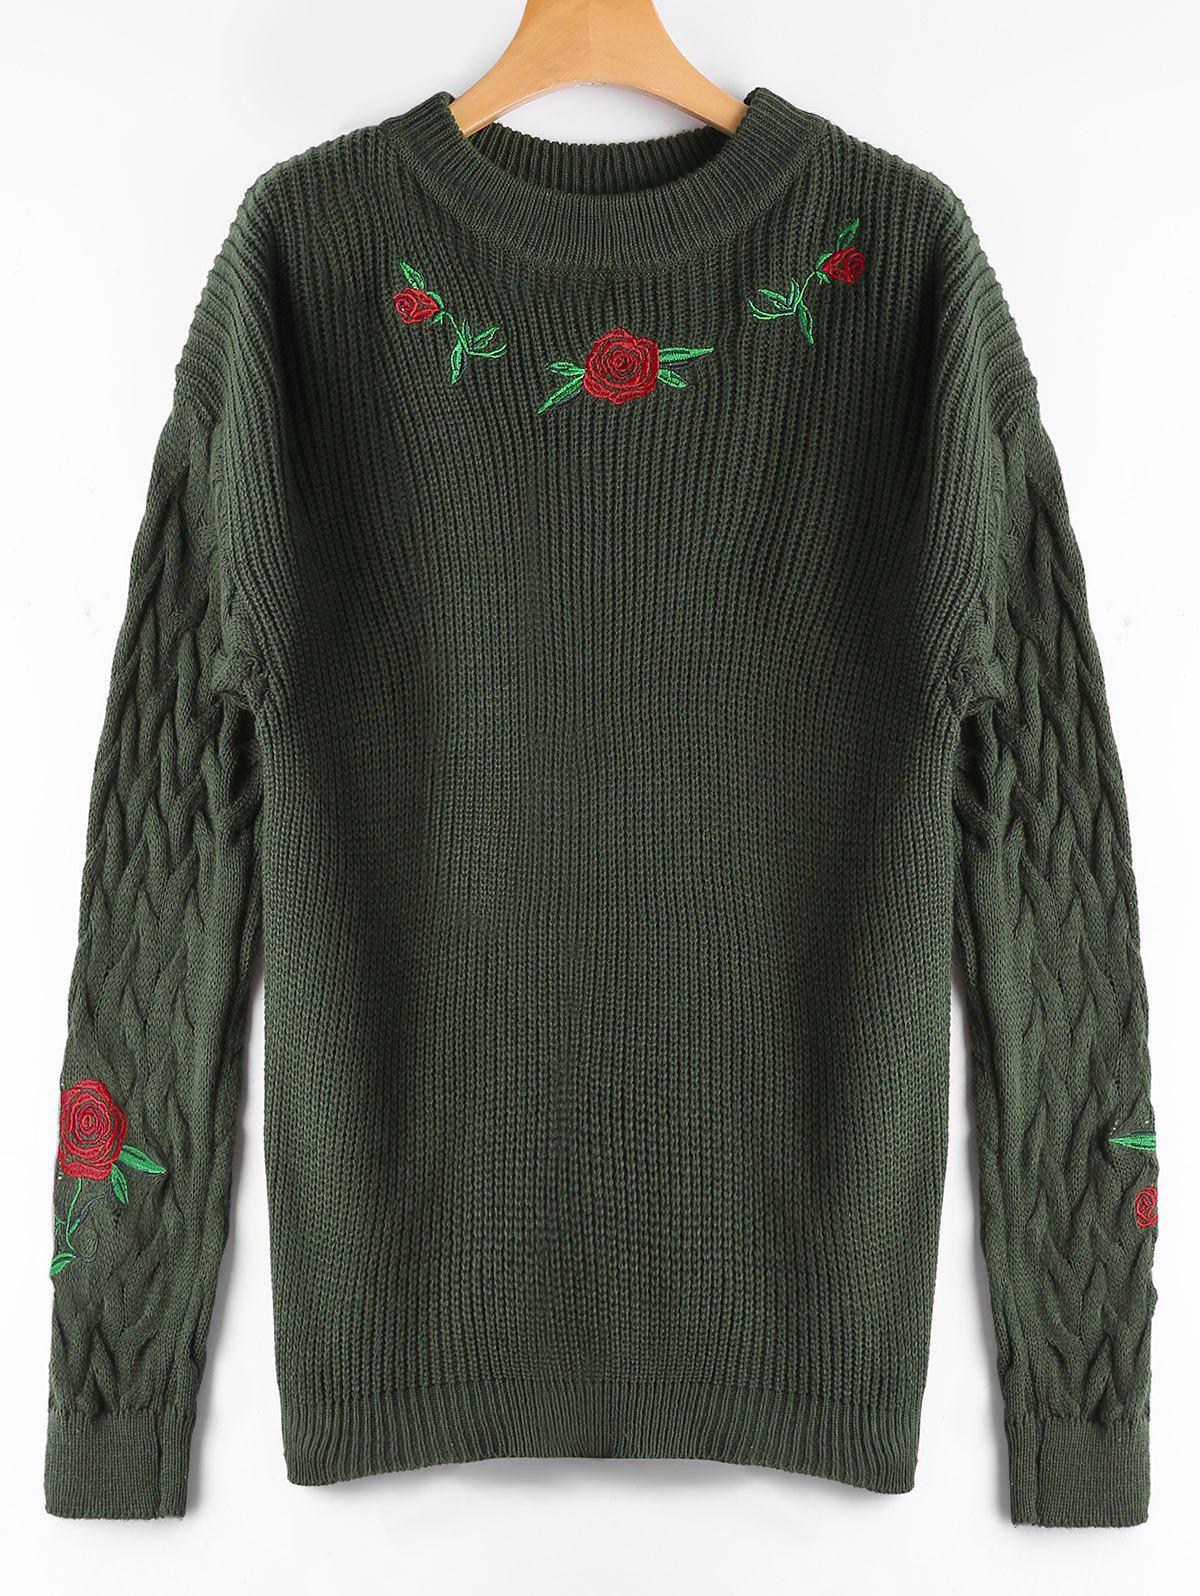 Ribbed Floral Embroidered Cable Knit Sweater 223431702